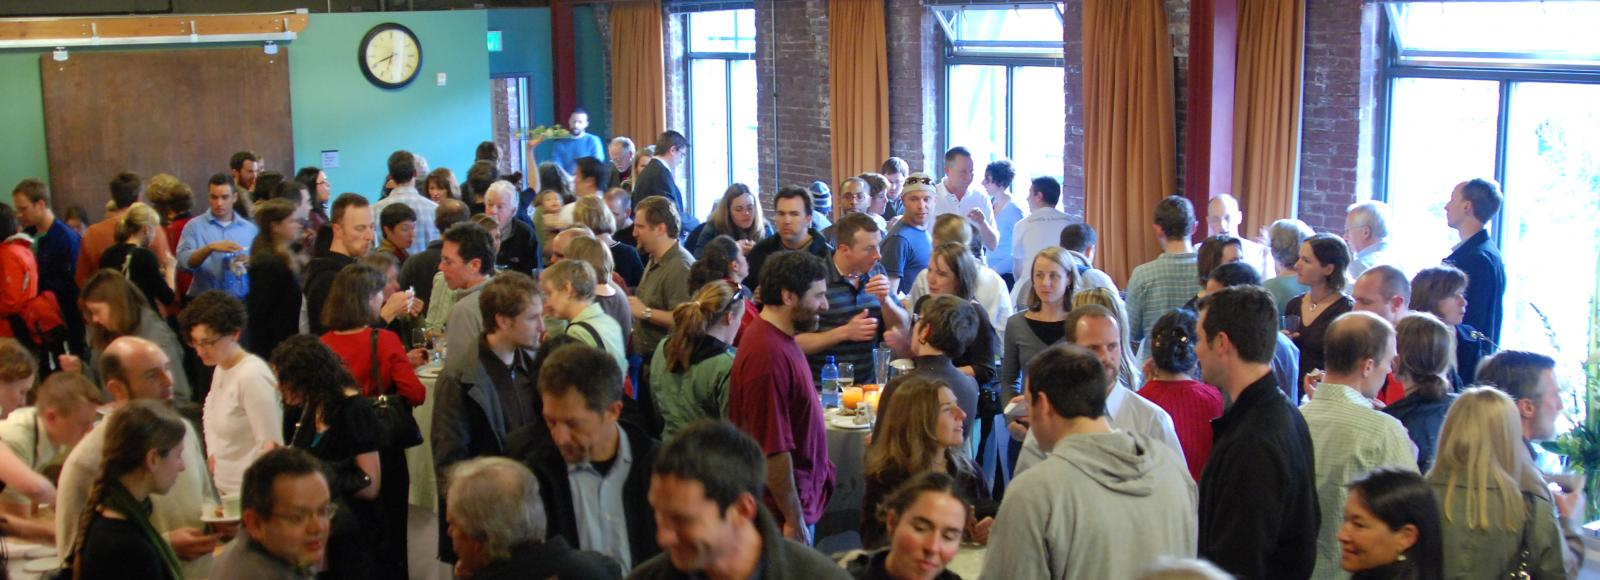 Crowd of people - 200 or so - inside the conference room at the Natural Capital Center, Portland